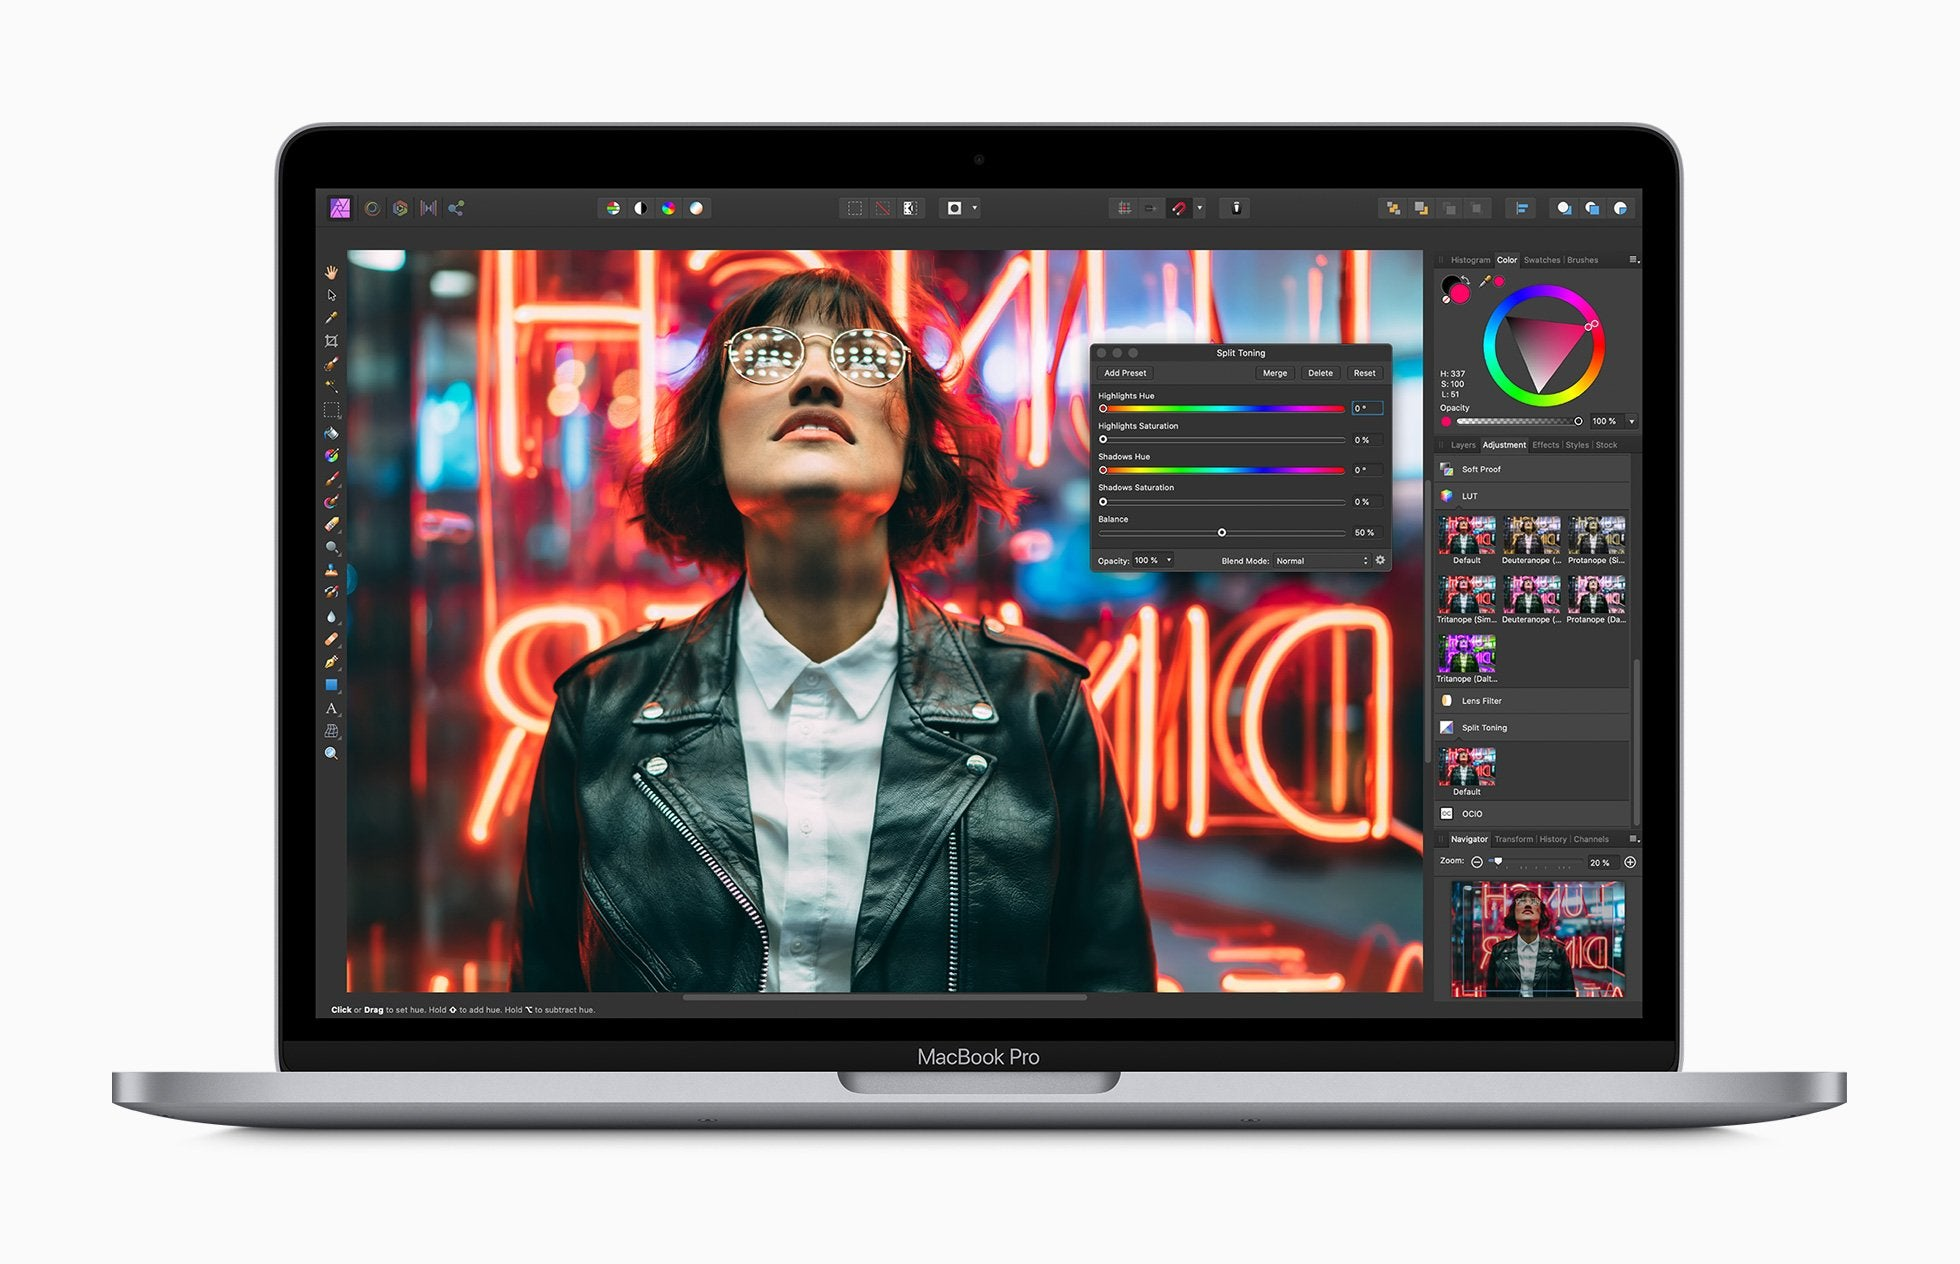 NEW Apple Macbook Pro 13 Inch Laptop 2020 Model (2.0GHz quad‑core 10th‑generation Intel Core i5, 16GB, 1TB SSD) - iStock BD